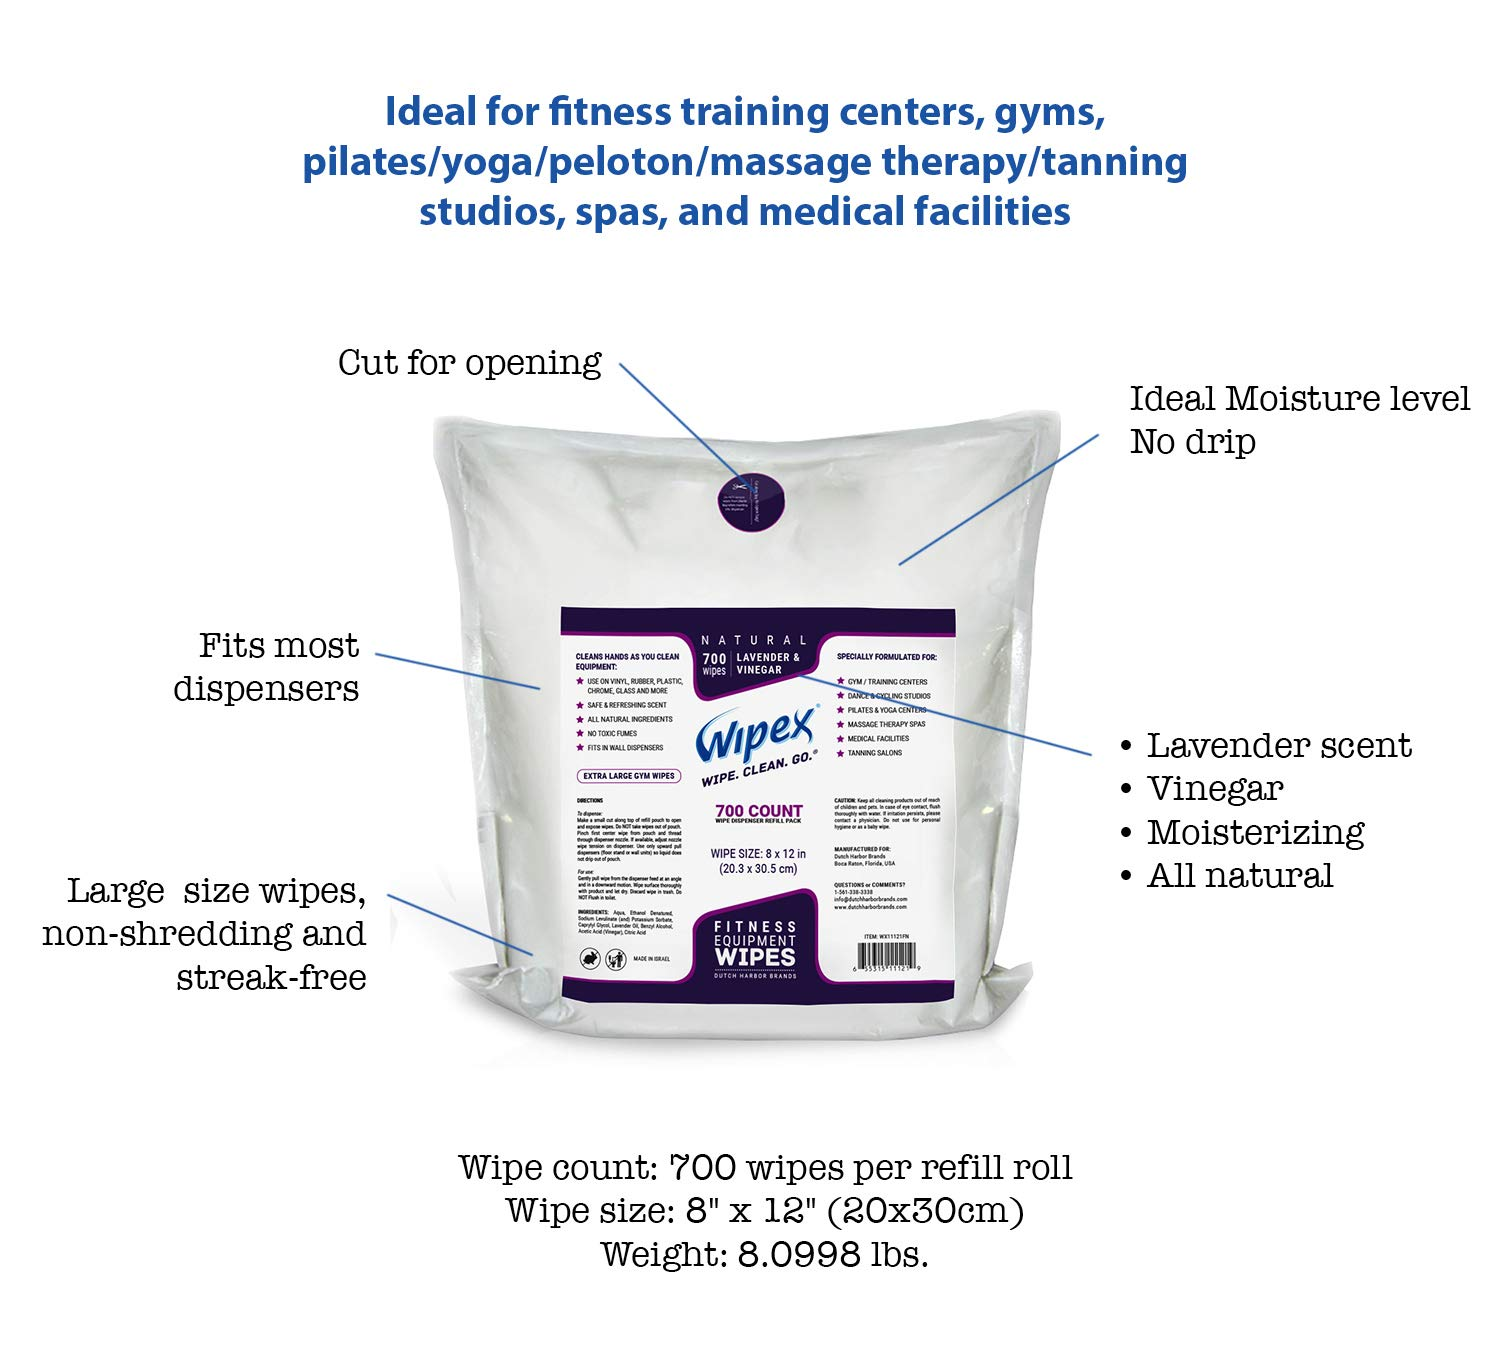 Wipex Gym & Fitness Wipes Refill Pack 700 Large Natural Wipes With Vinegar & Lavender Oil (1 Refill) by Wipex (Image #3)